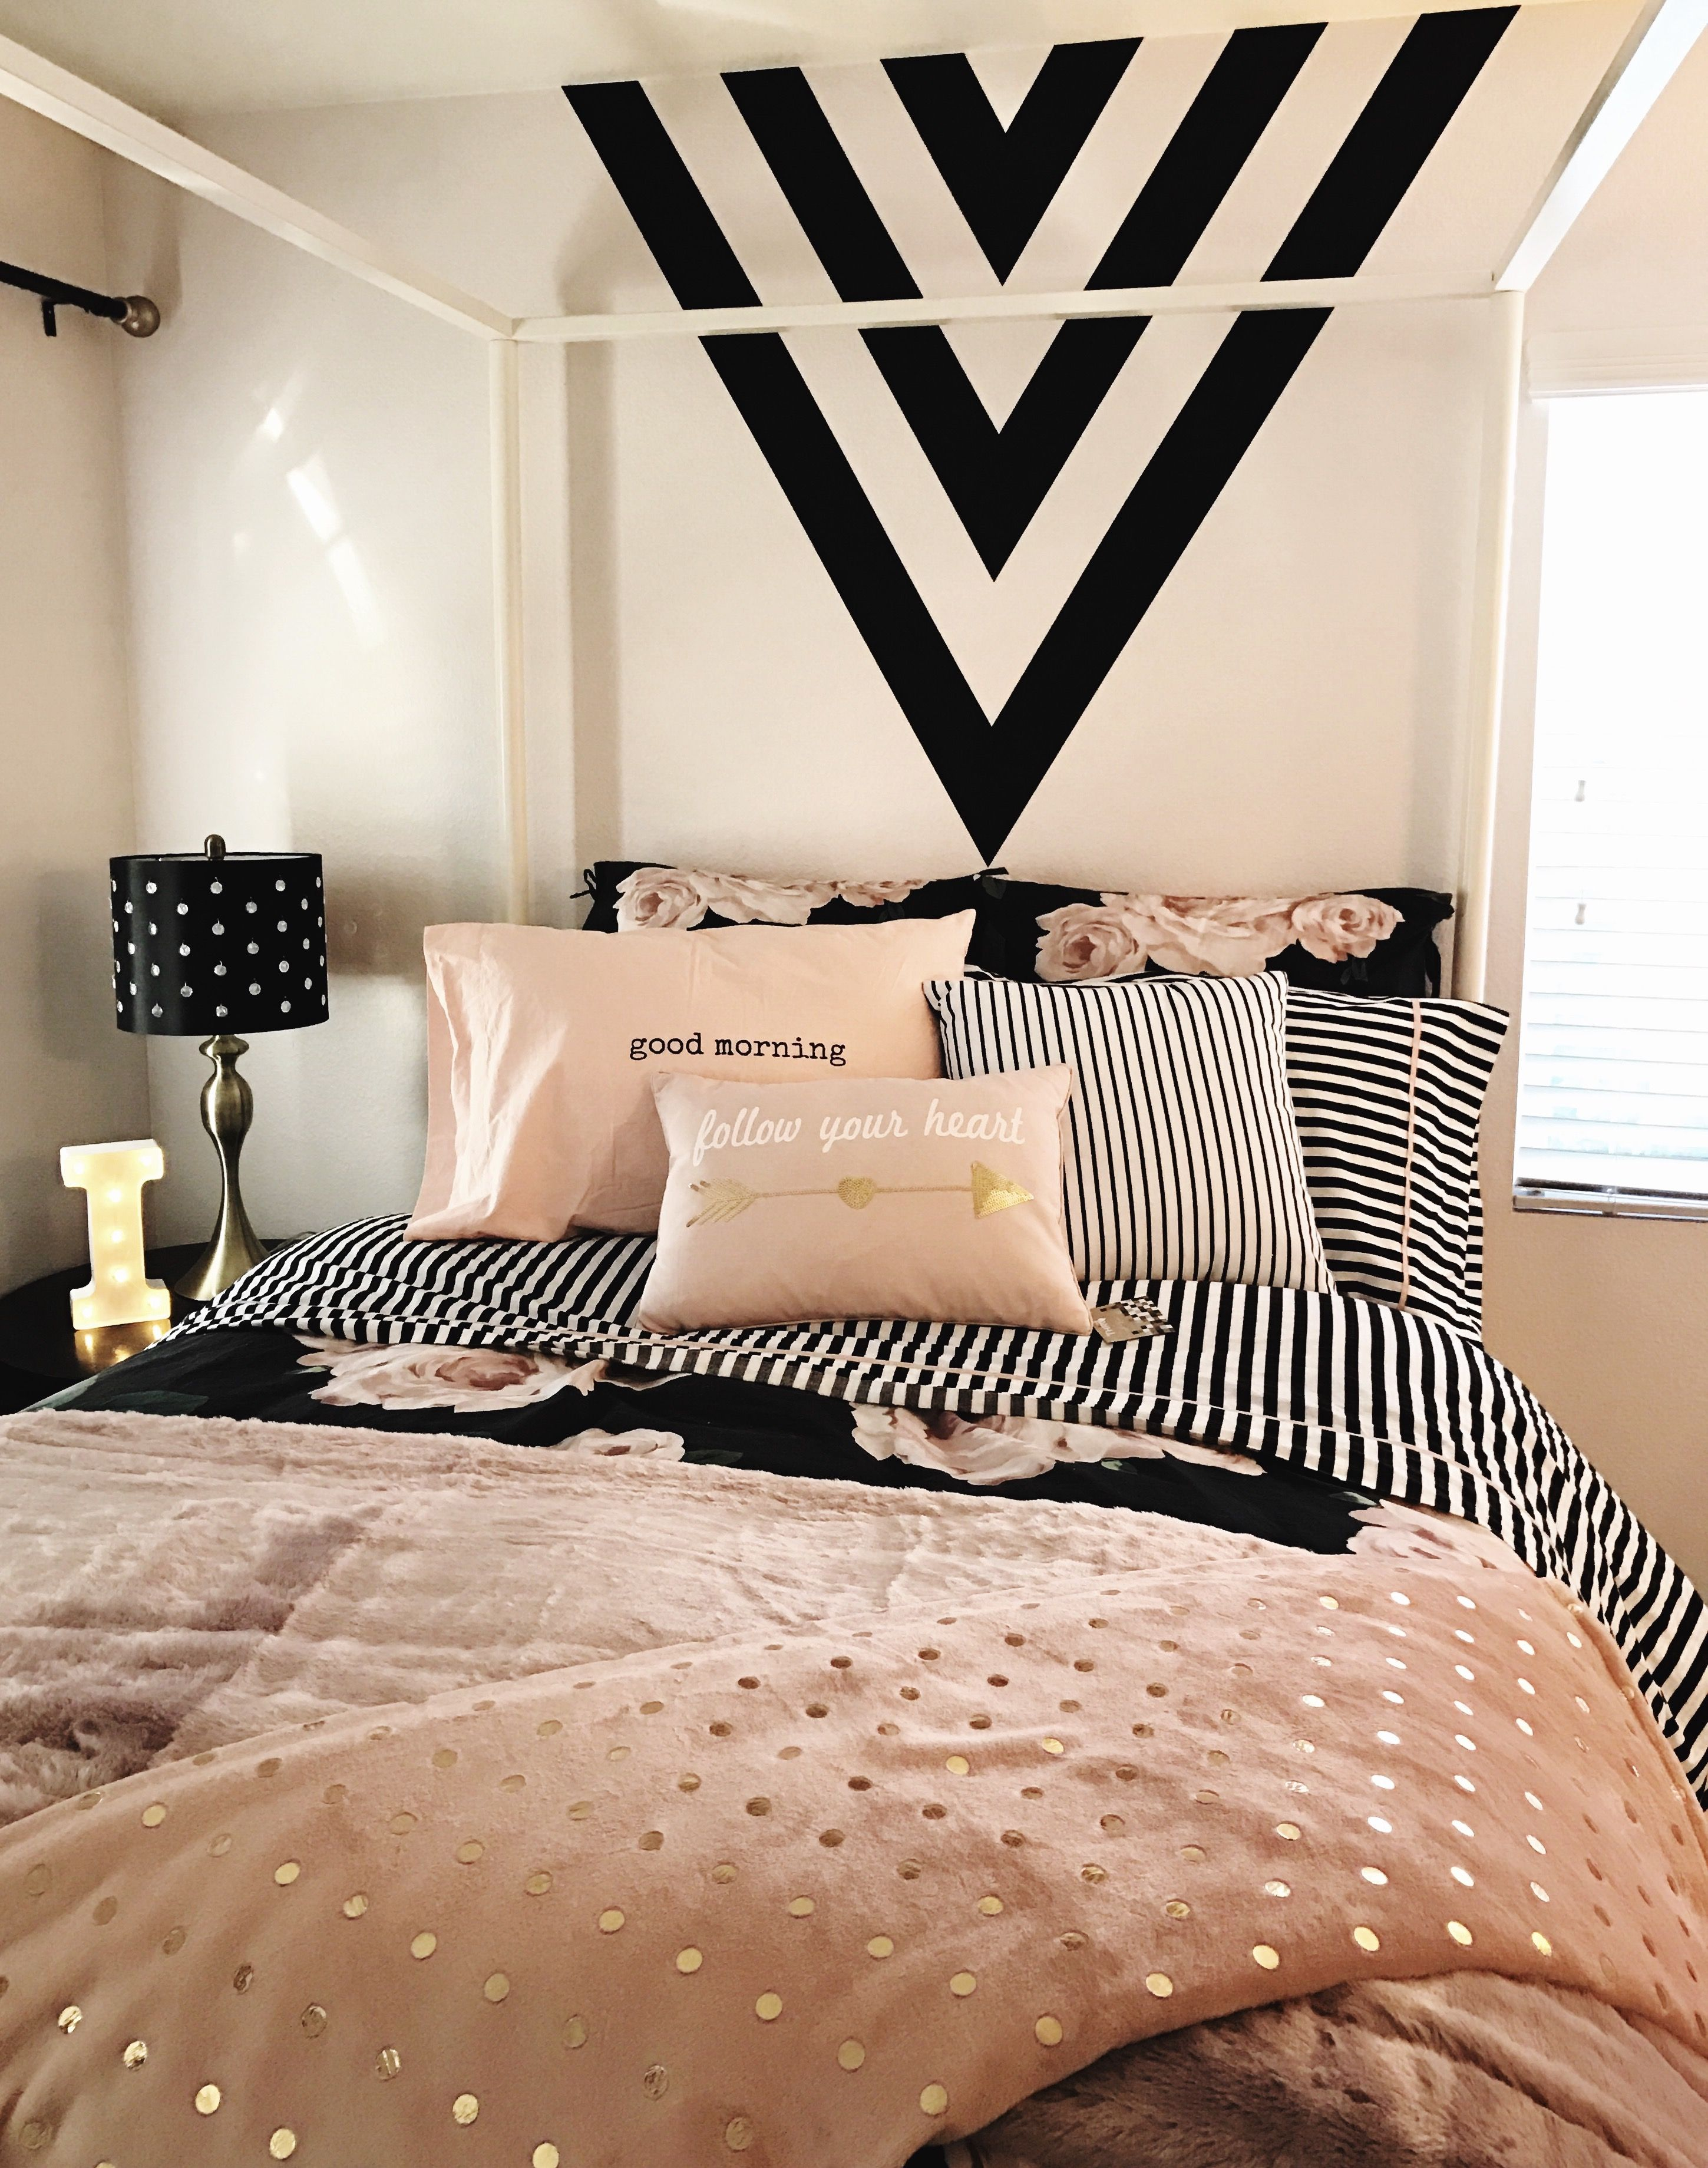 Pin by majesty x on studio br pinterest bedroom room and